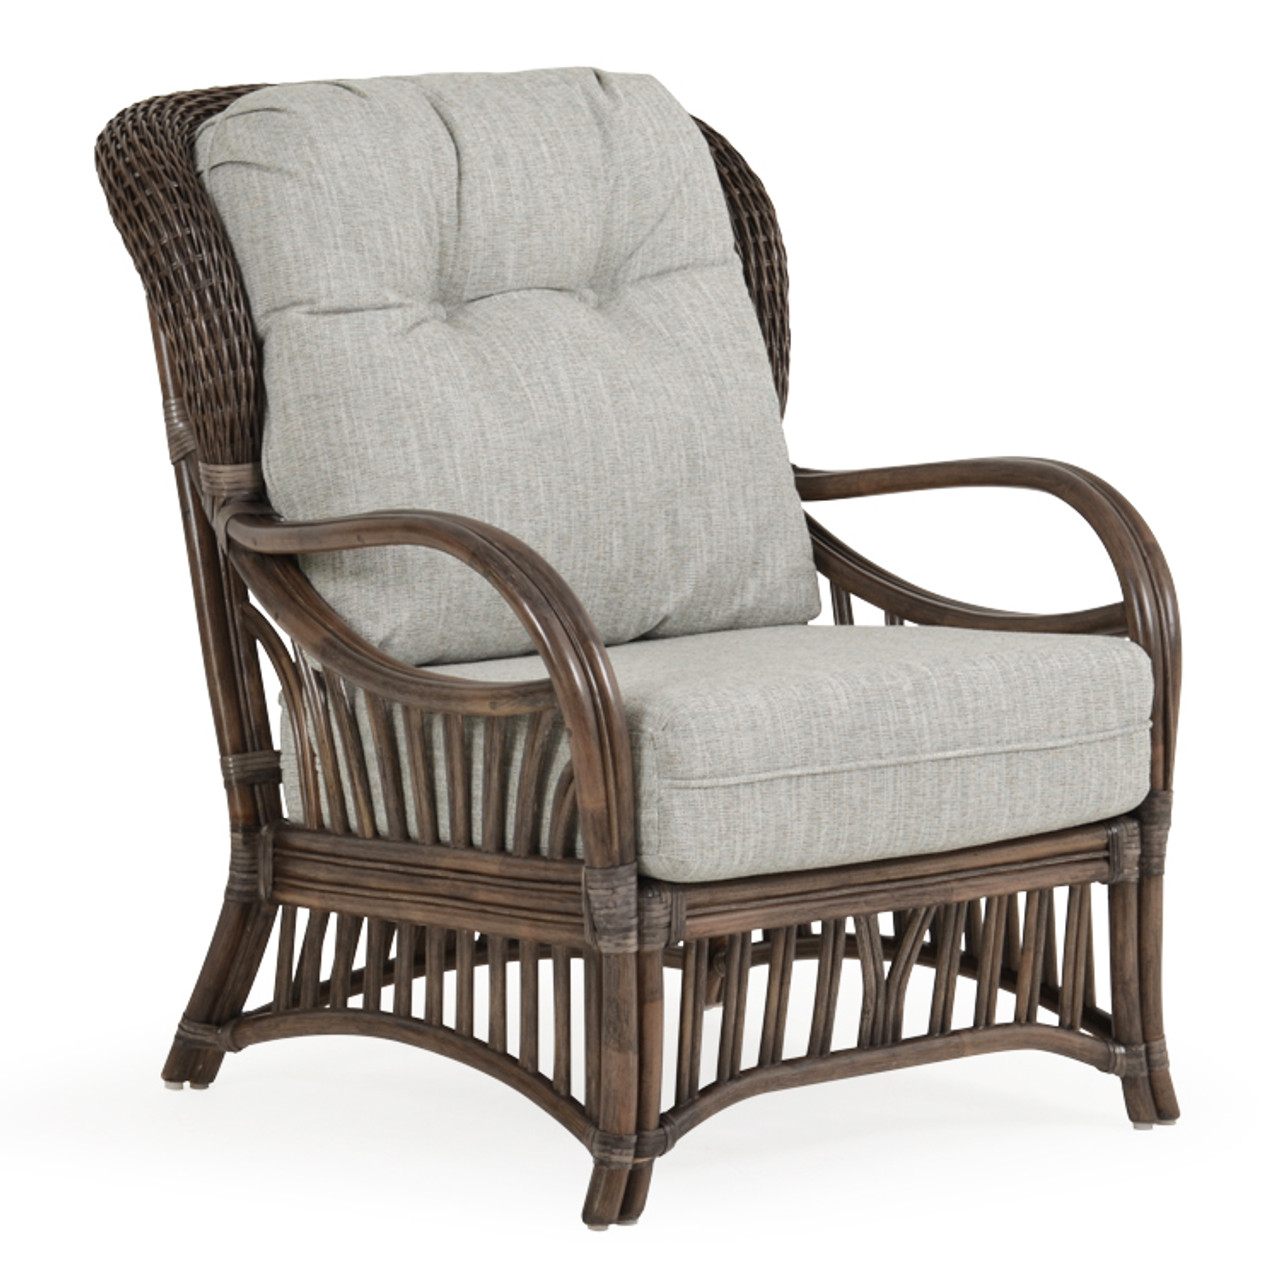 Picture of: Islamorada Indoor Rattan High Back Chair With Cushions Leaders